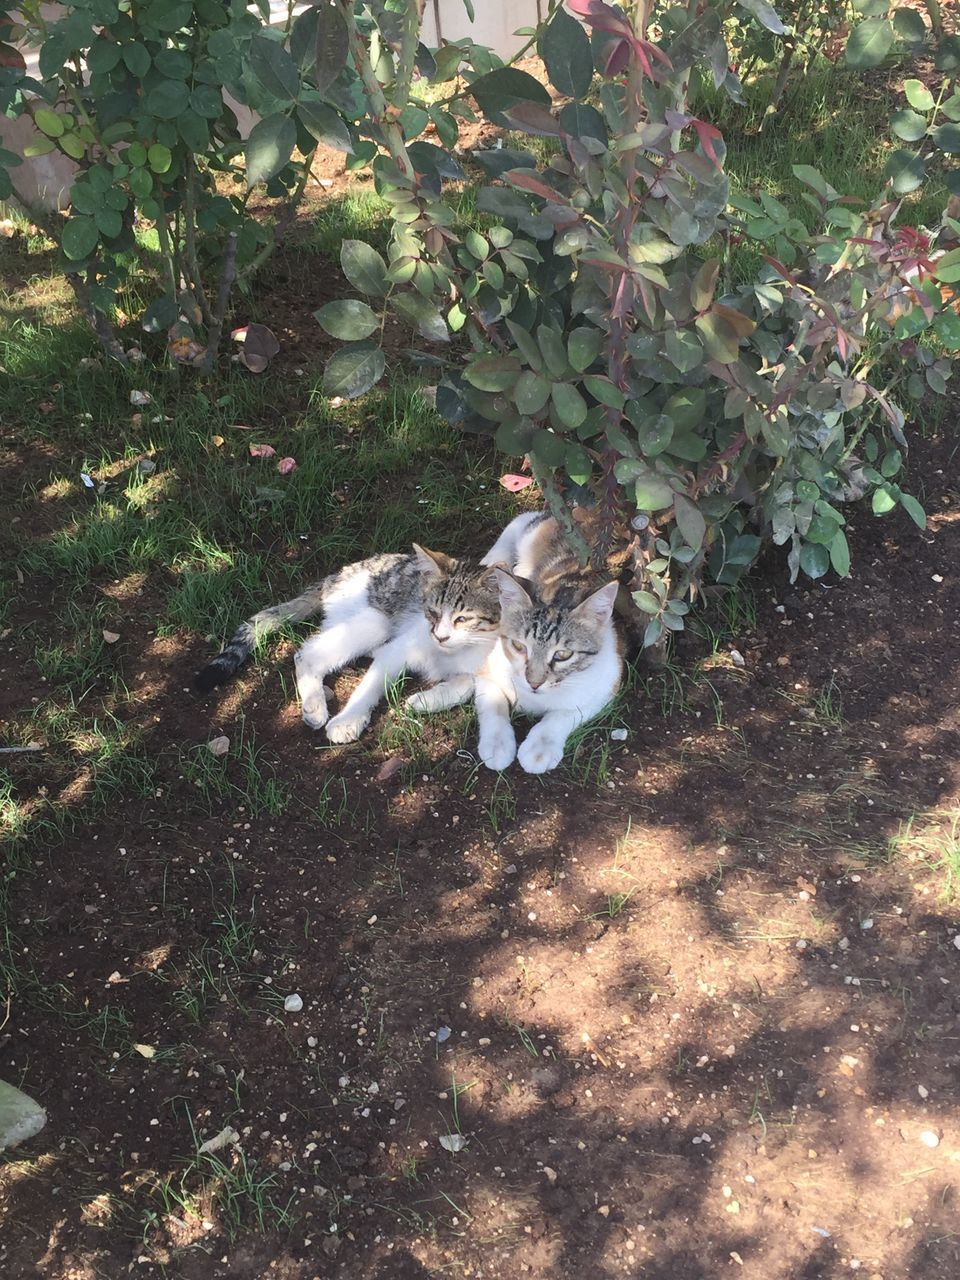 animal themes, high angle view, growth, mammal, plant, nature, outdoors, no people, day, domestic animals, domestic cat